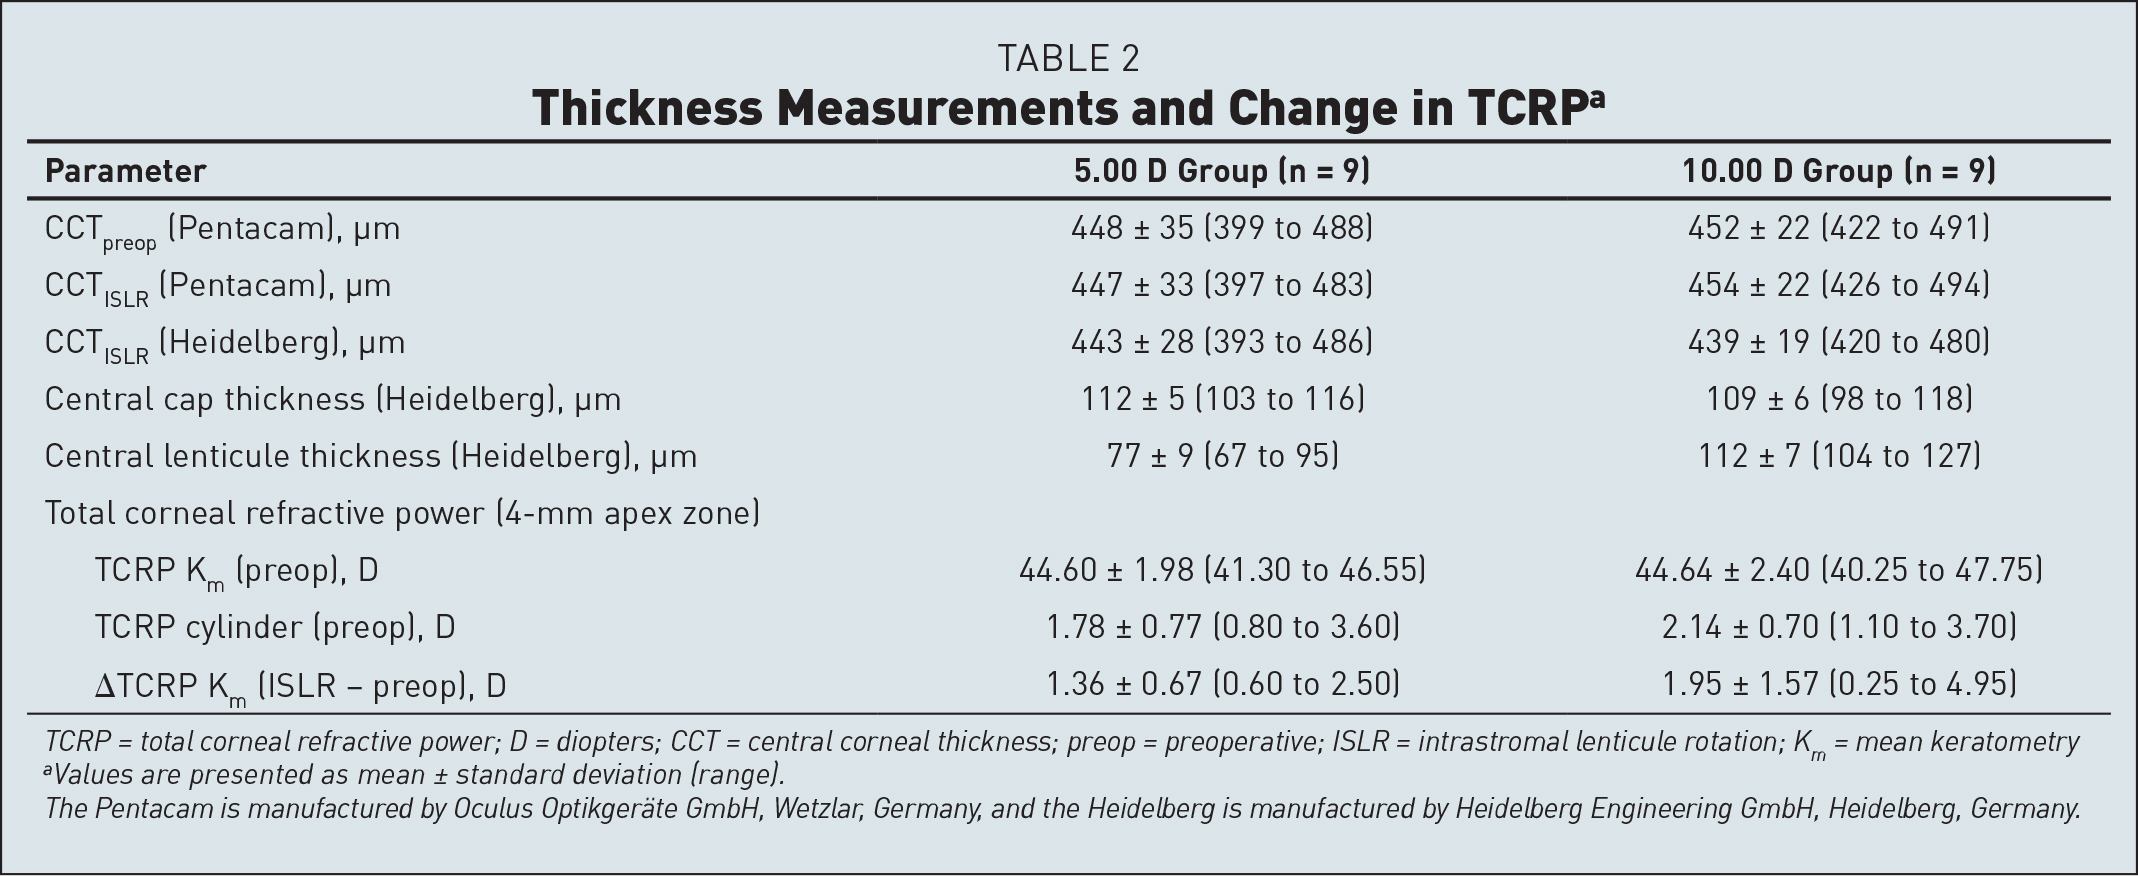 Thickness Measurements and Change in TCRPa